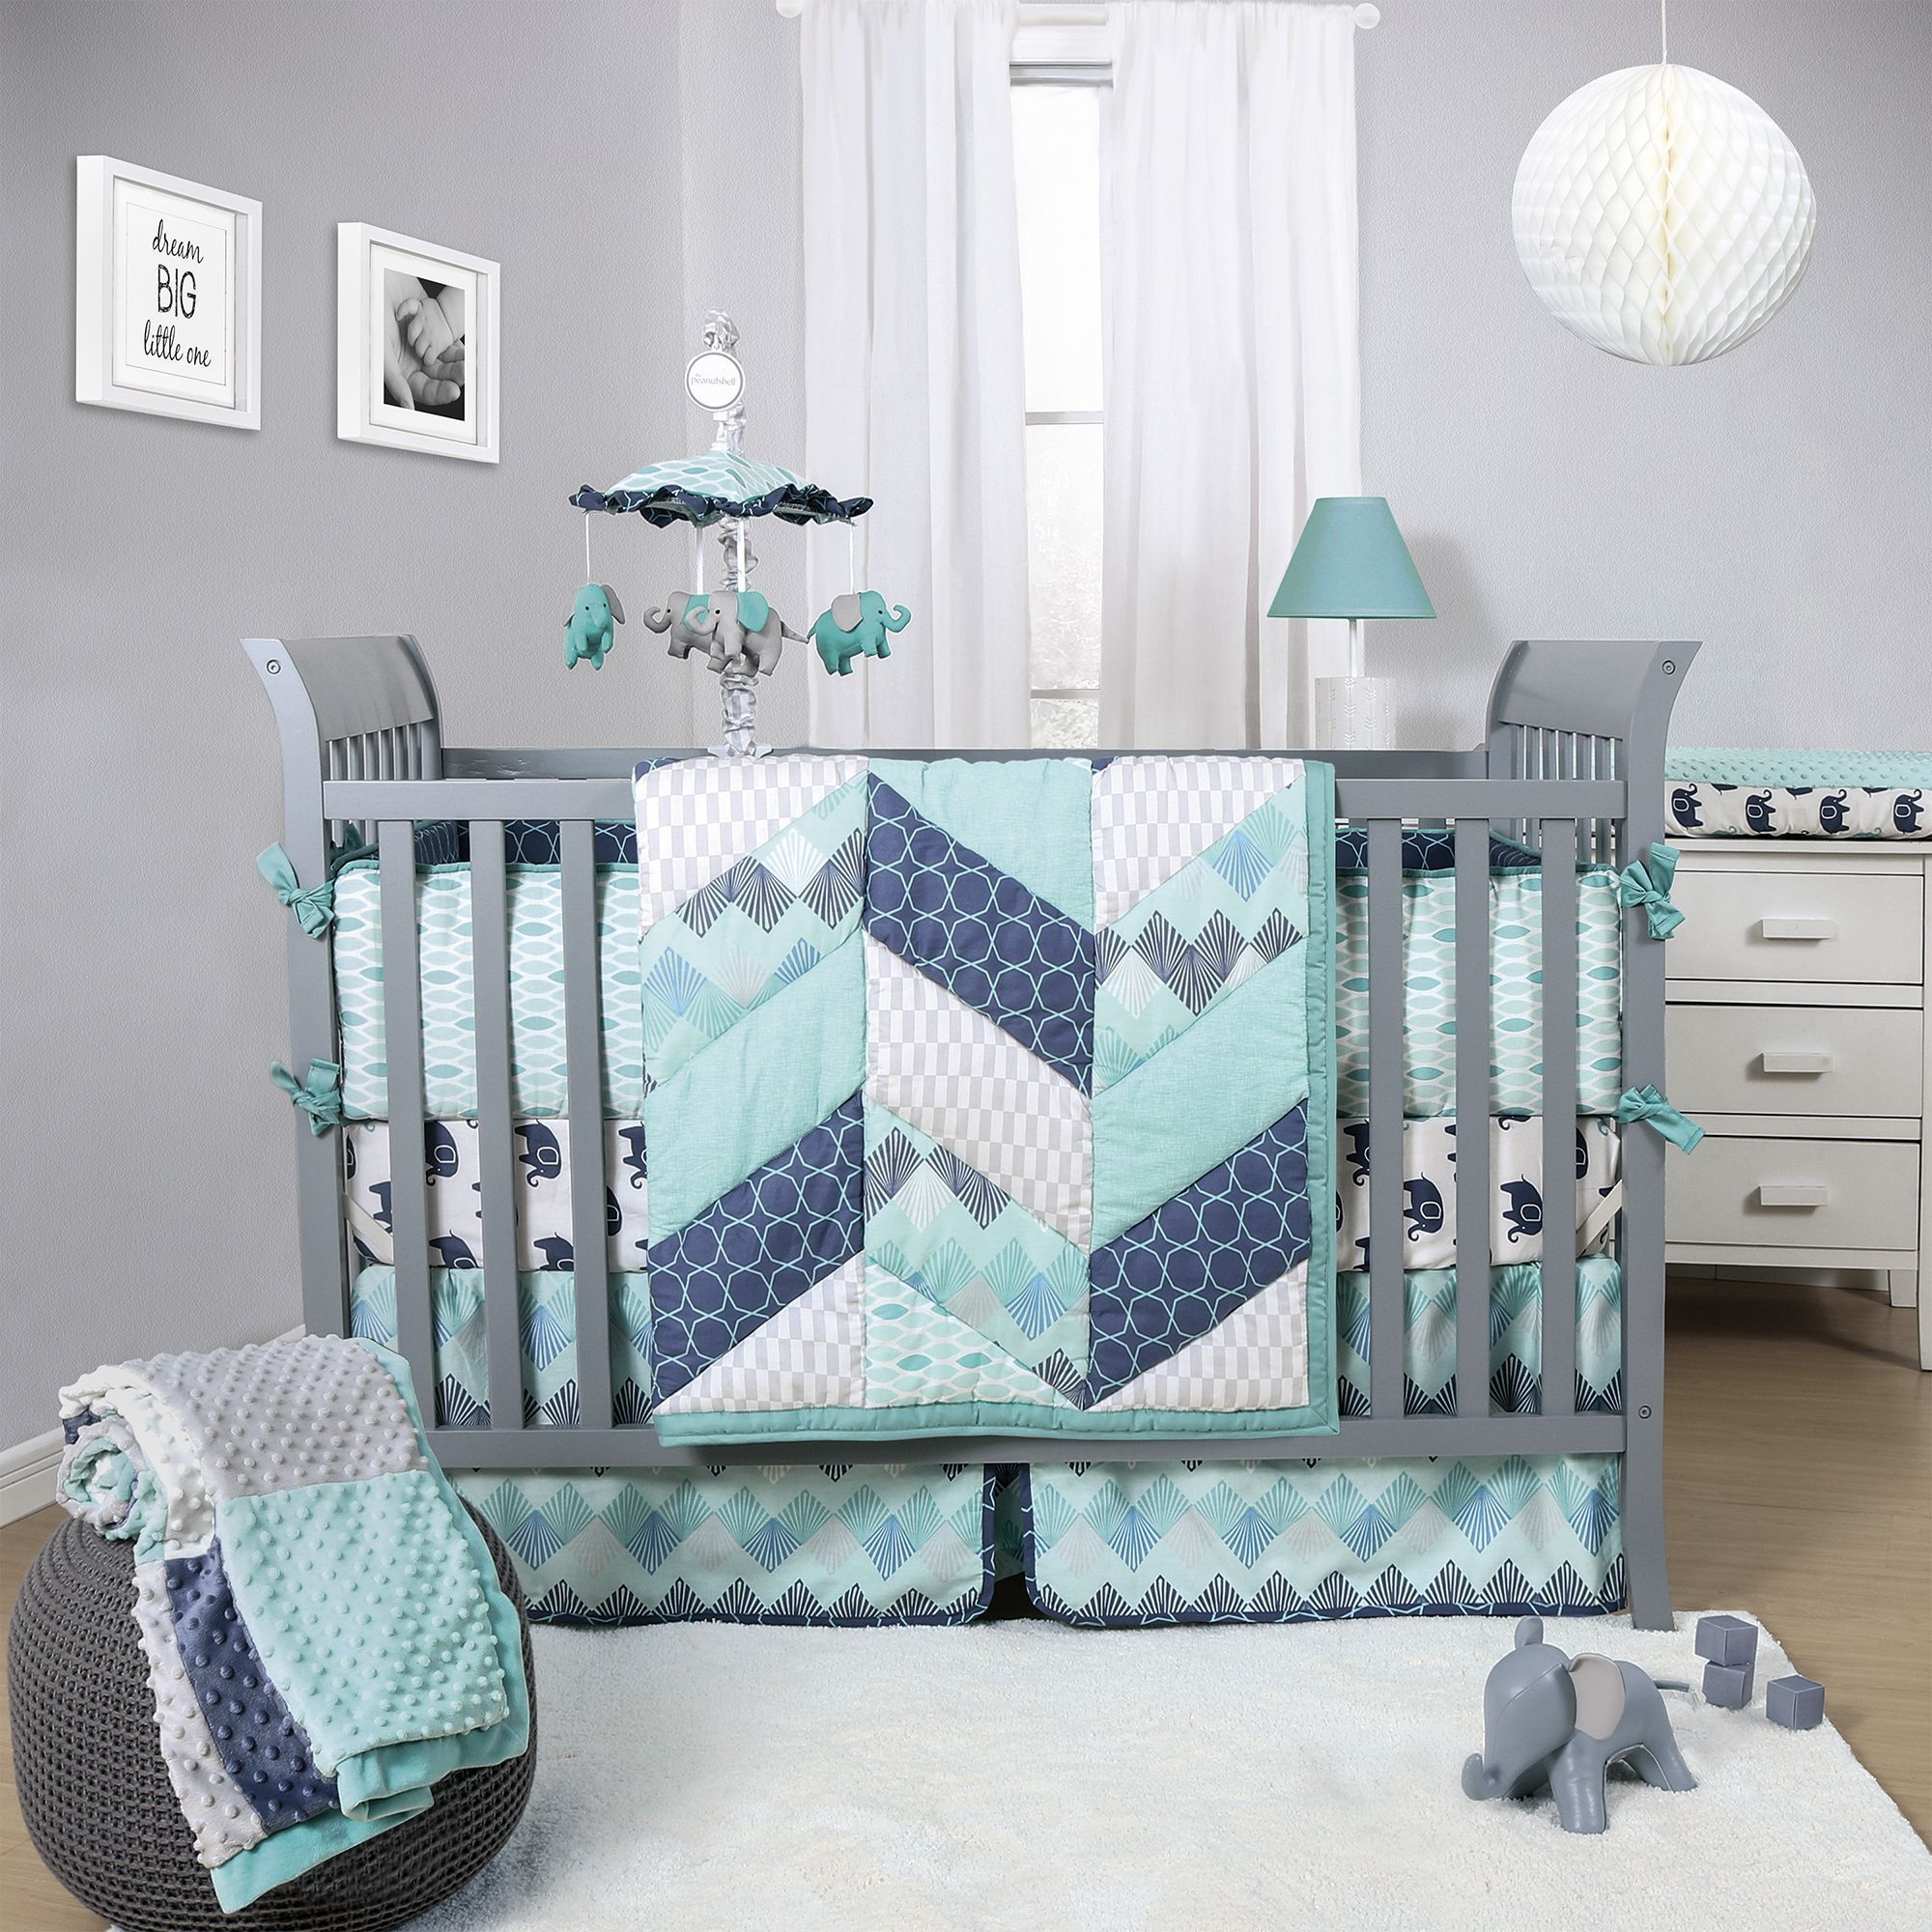 The Peanut Shell Mosaic 3 Piece Crib Bedding Set Features Pieced Herringbone Design With Geometric Prints In Cotton Sateen Combination Of Teal Grey